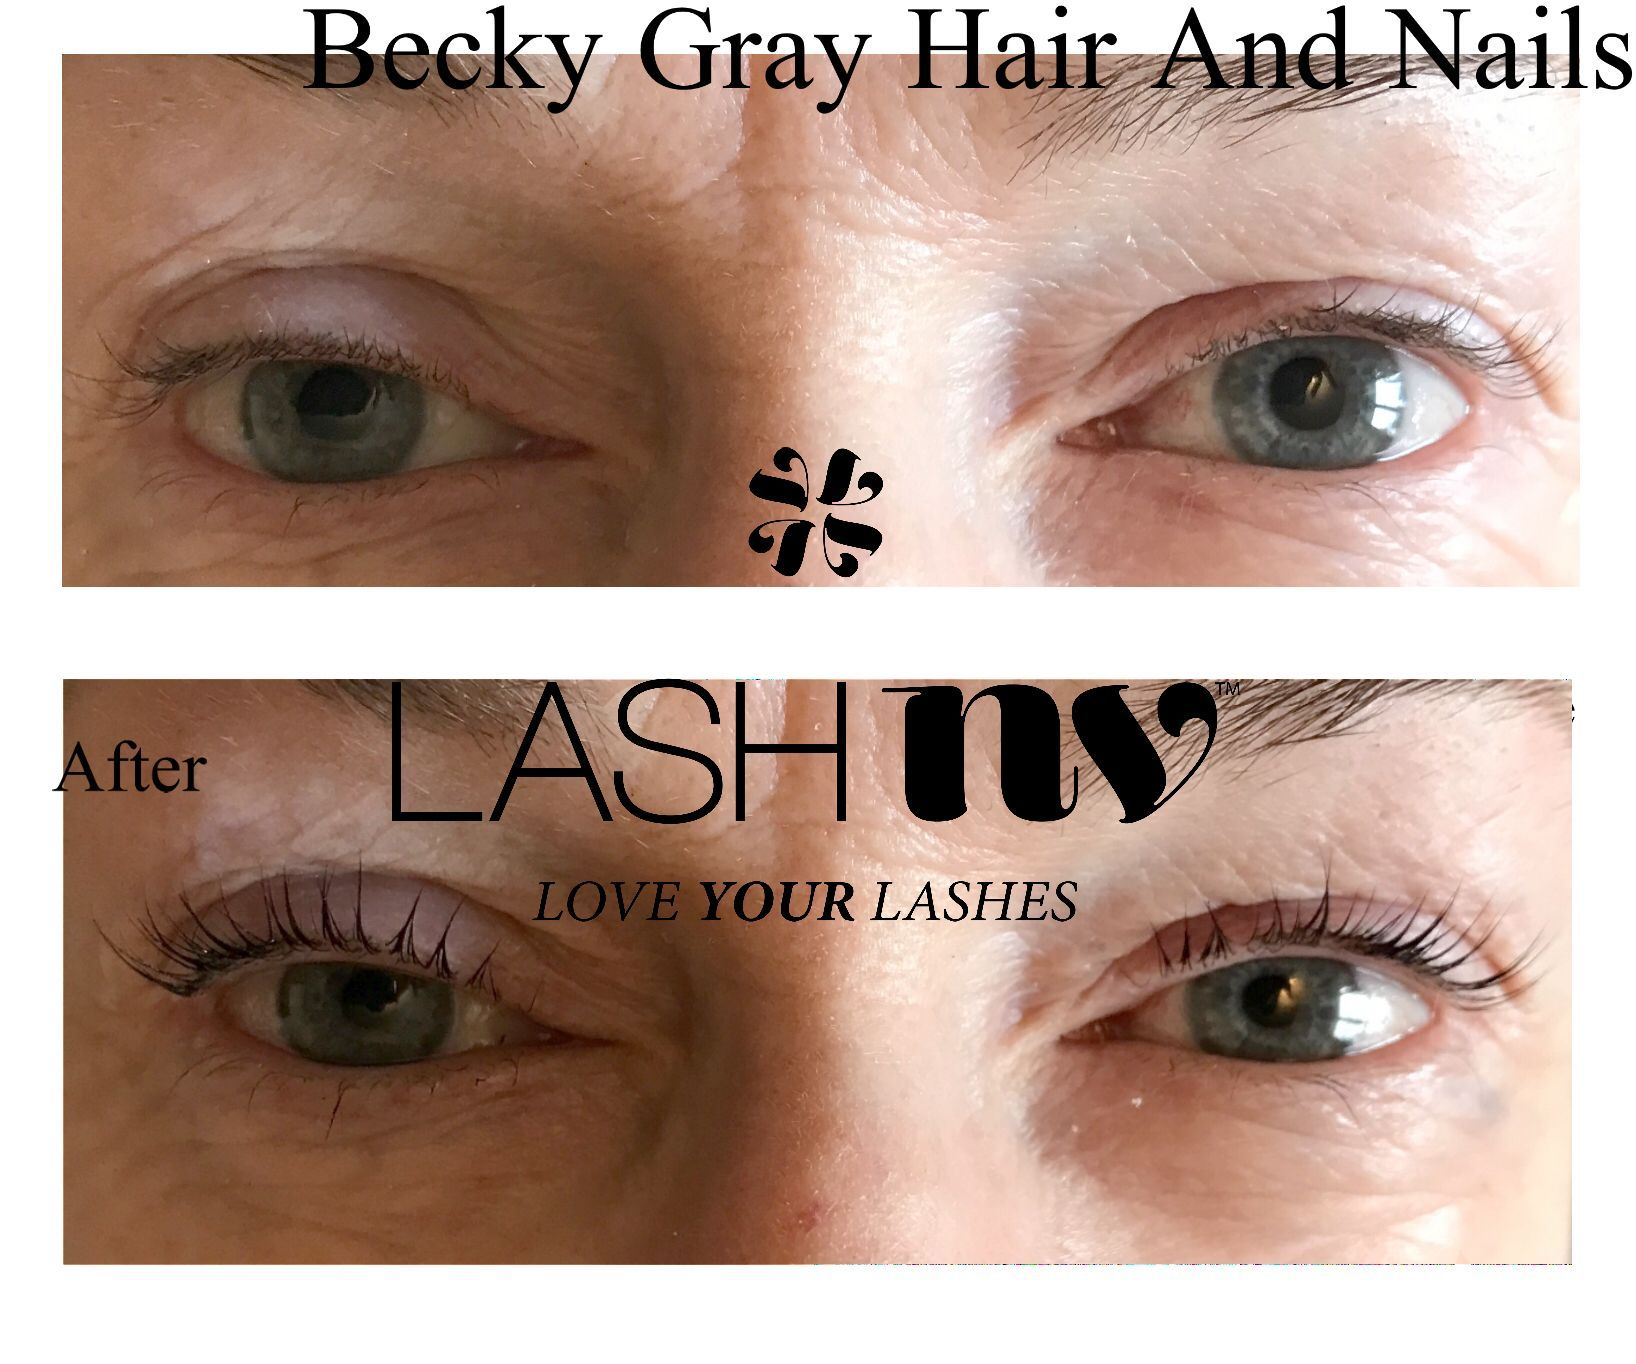 4a739535af7 Beautiful before and after of lash Nv lasts 6-8 weeks no need for mascara  or false lashes :) #lashnv #lashlift #lashes #naturallashes